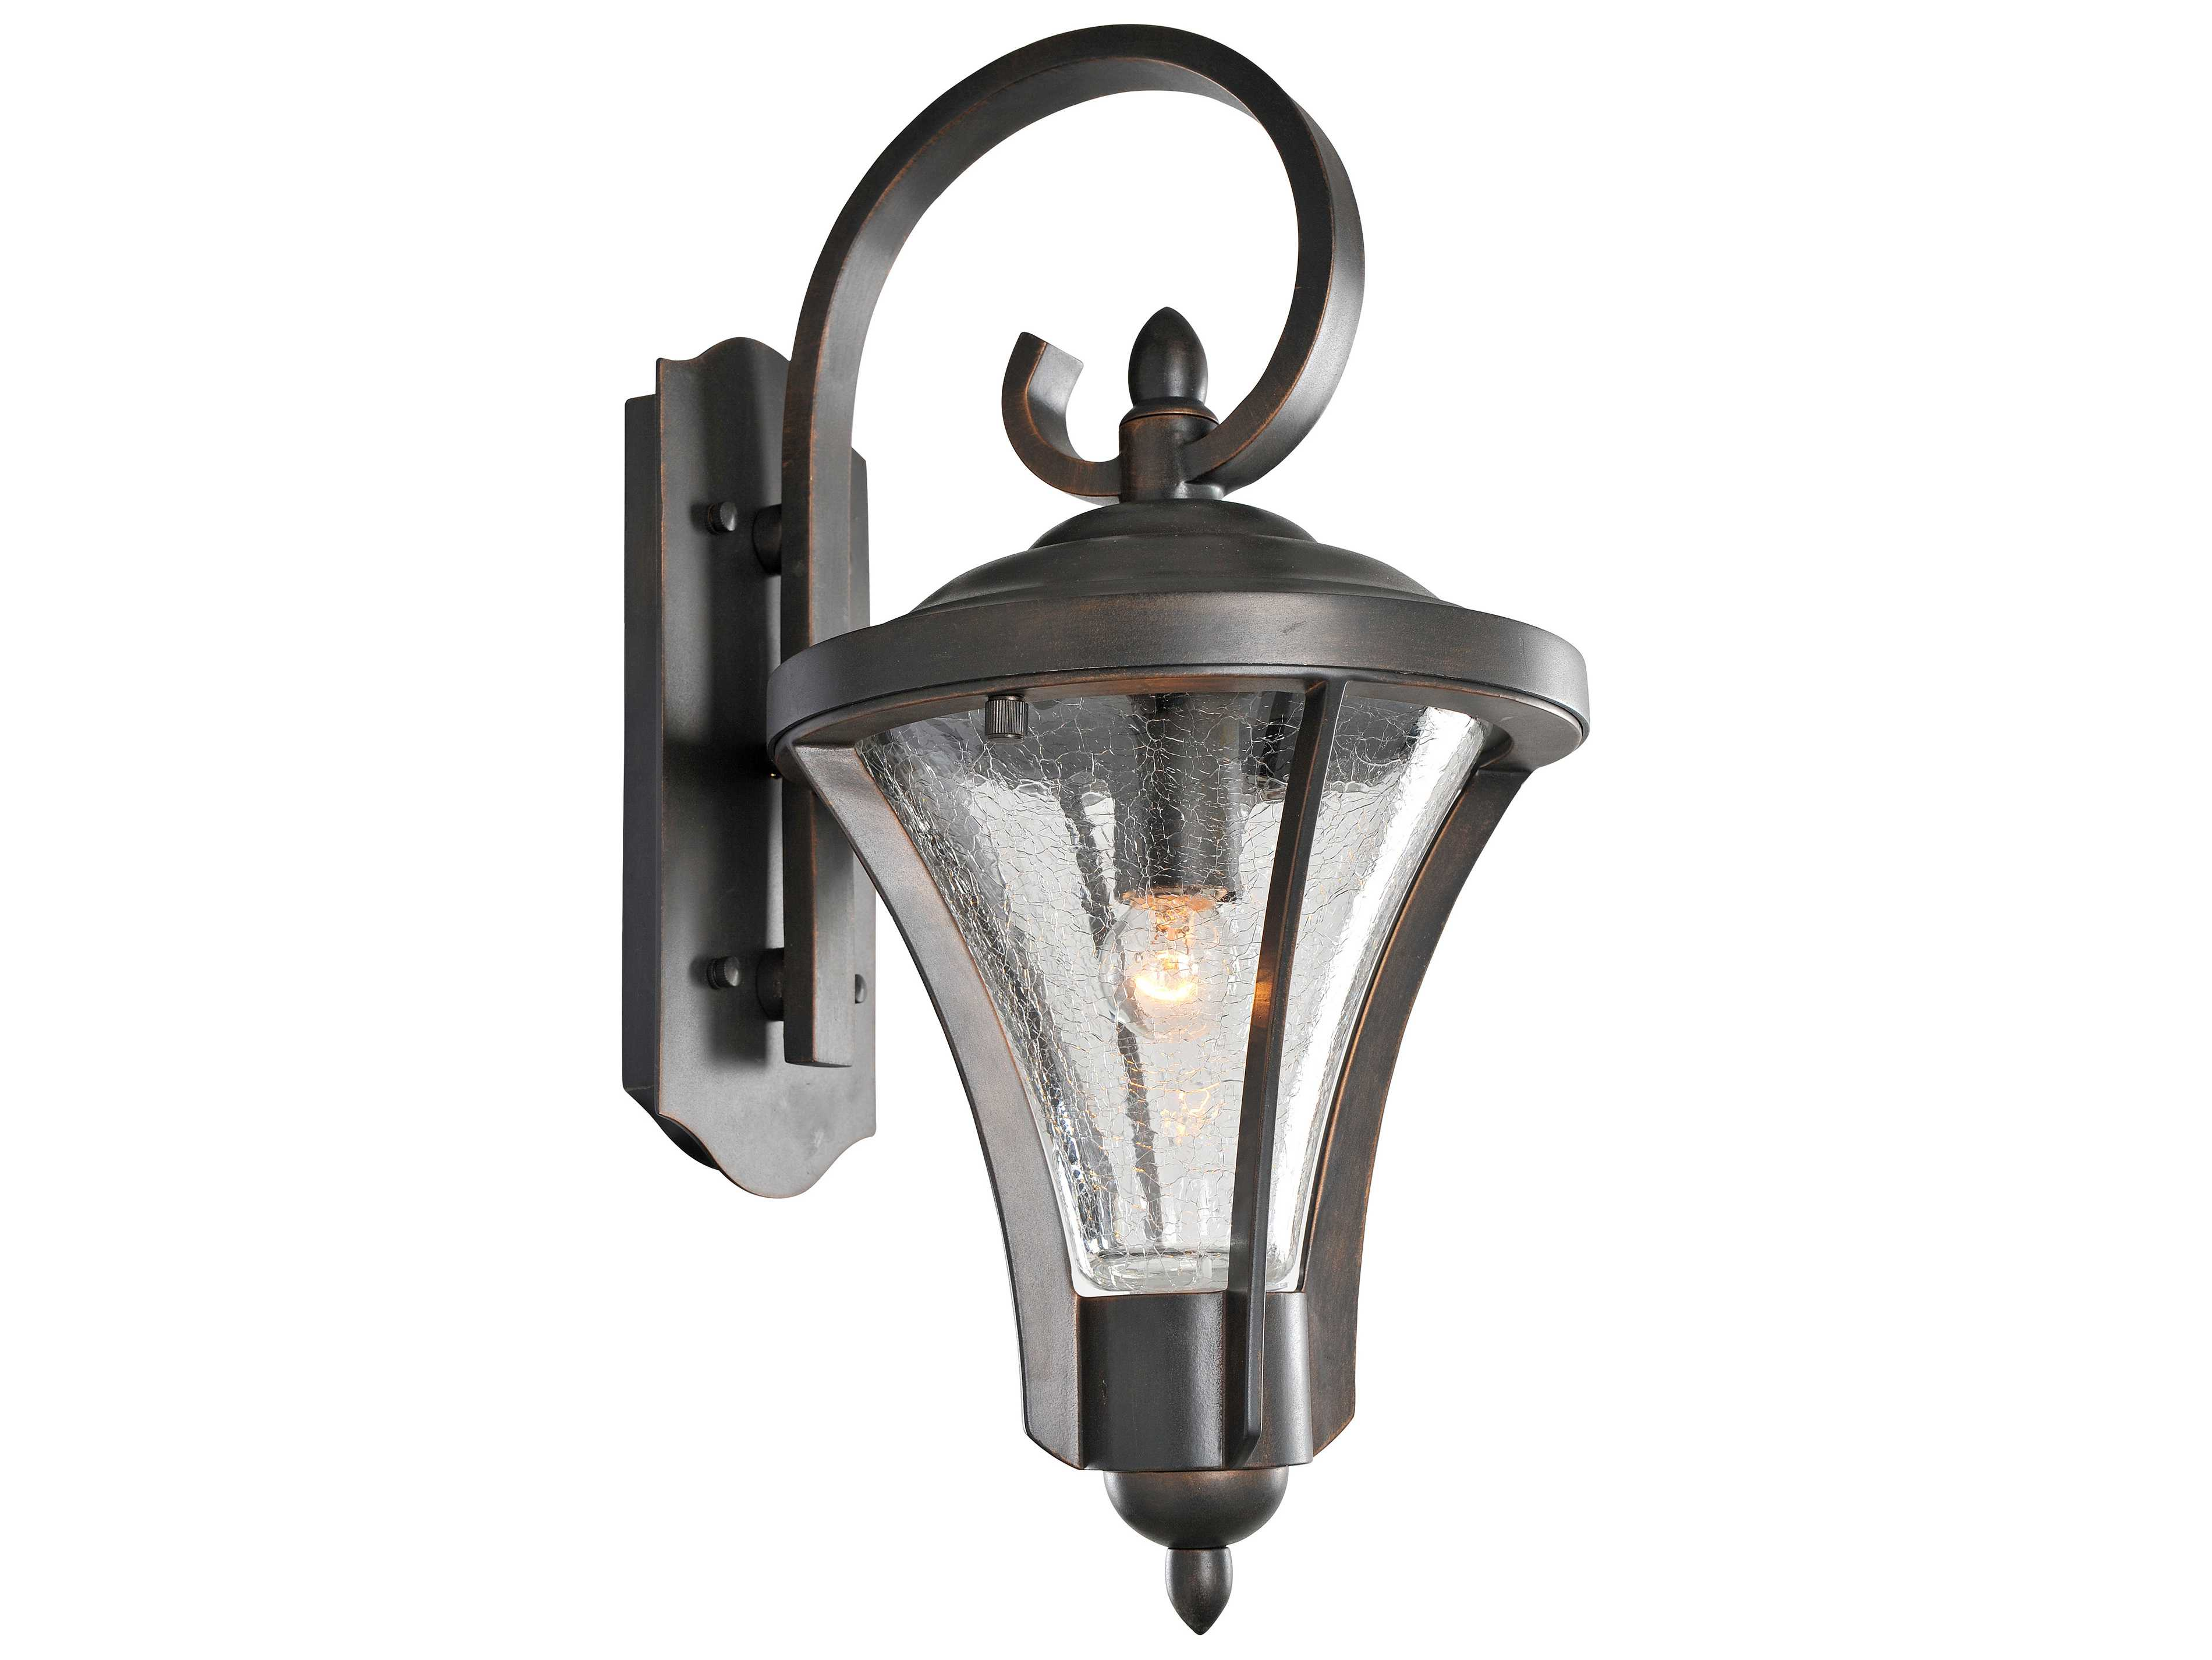 Kalco Lighting Lincoln Antique Copper Wall Sconce KA400720